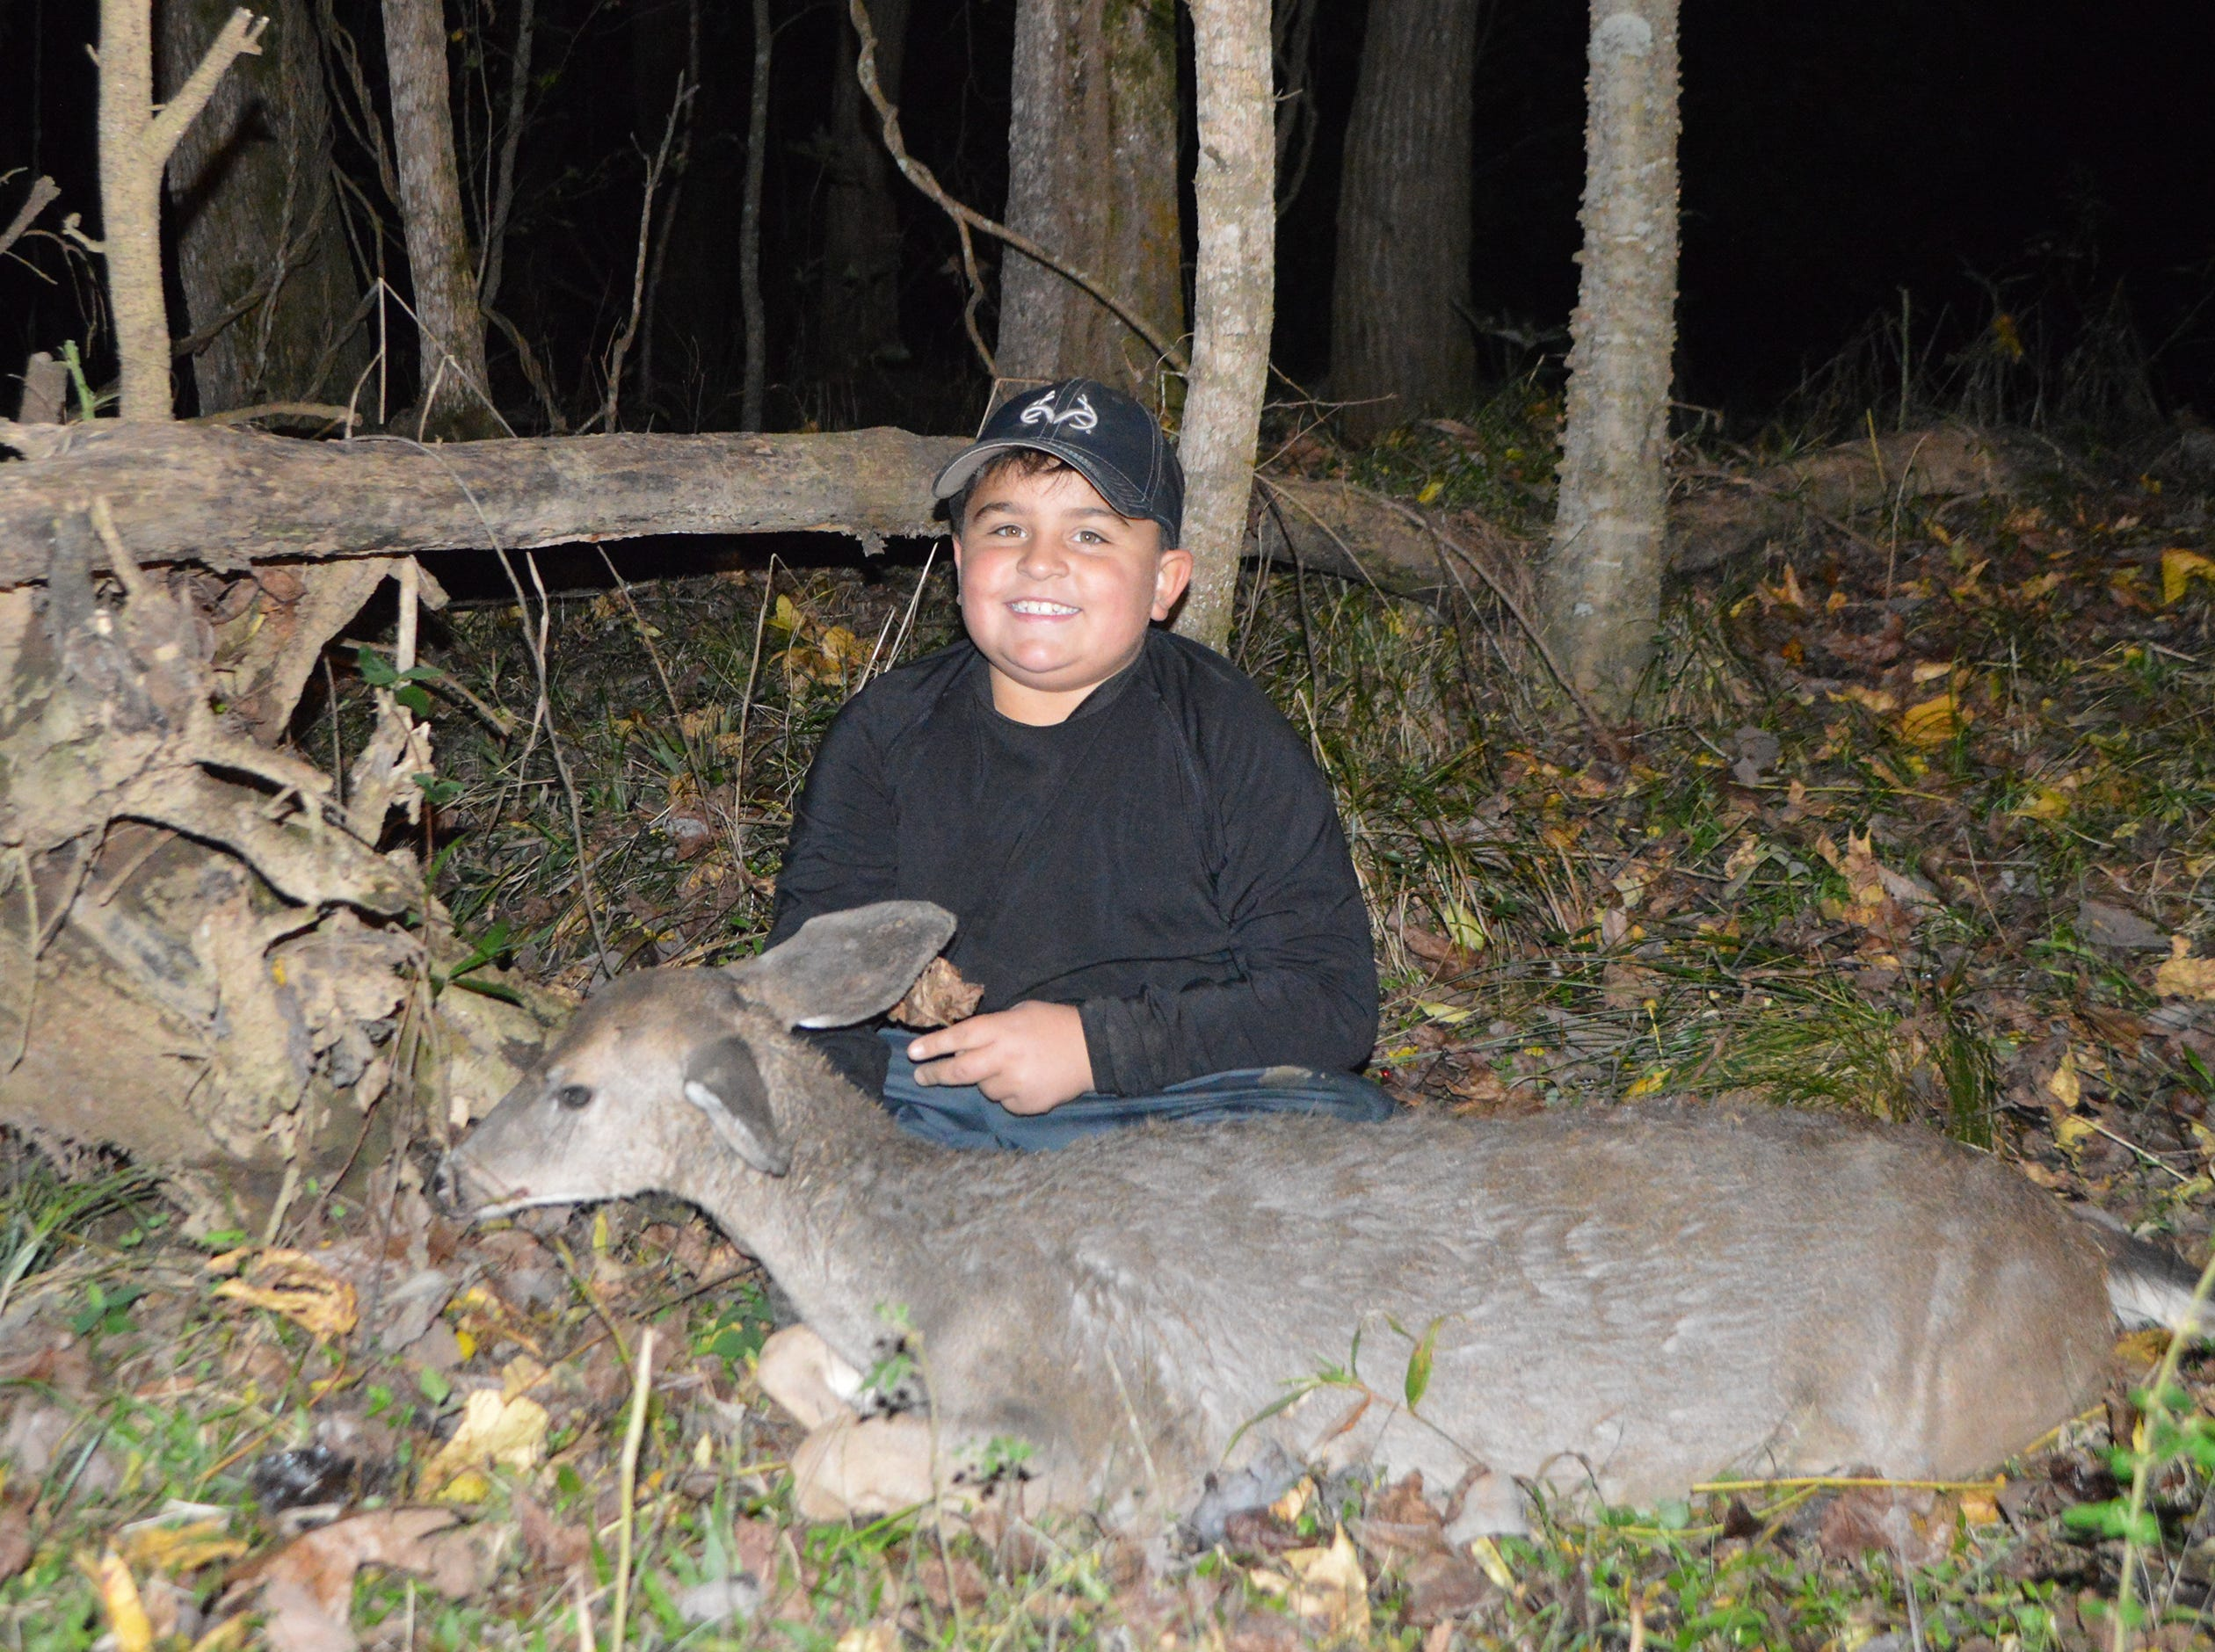 Corbin Farrell, 8, of Waveland, killed his first deer Saturday afternoon on November 10 while hunting public land with his father. He shot the deer at 150 yards while hunting from a ground blind.